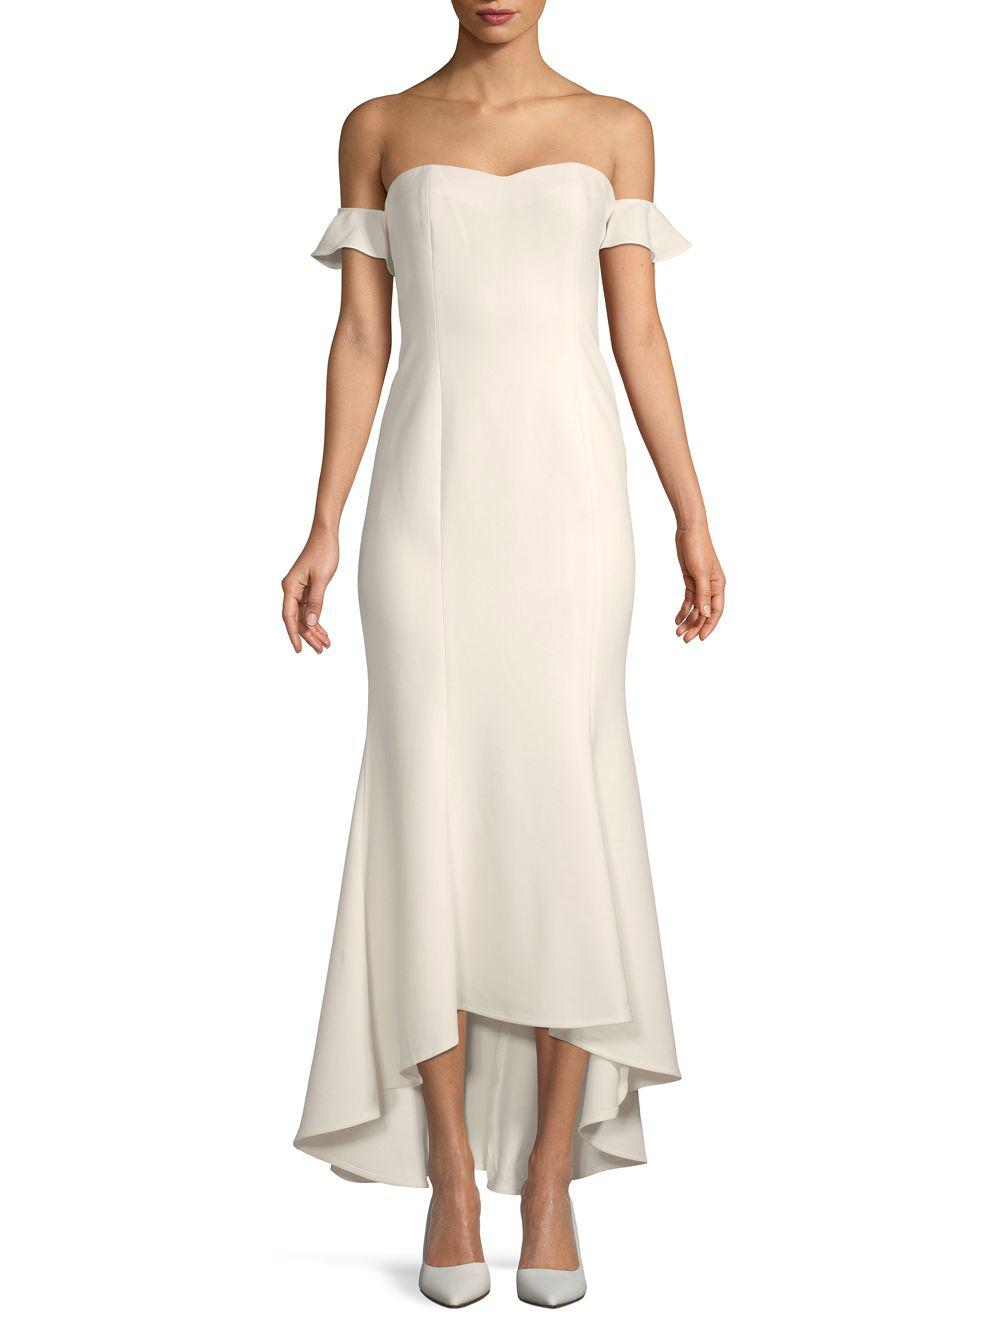 b87b738dccf3 Lyst - Likely Sunset Off-the-shoulder Gown in White